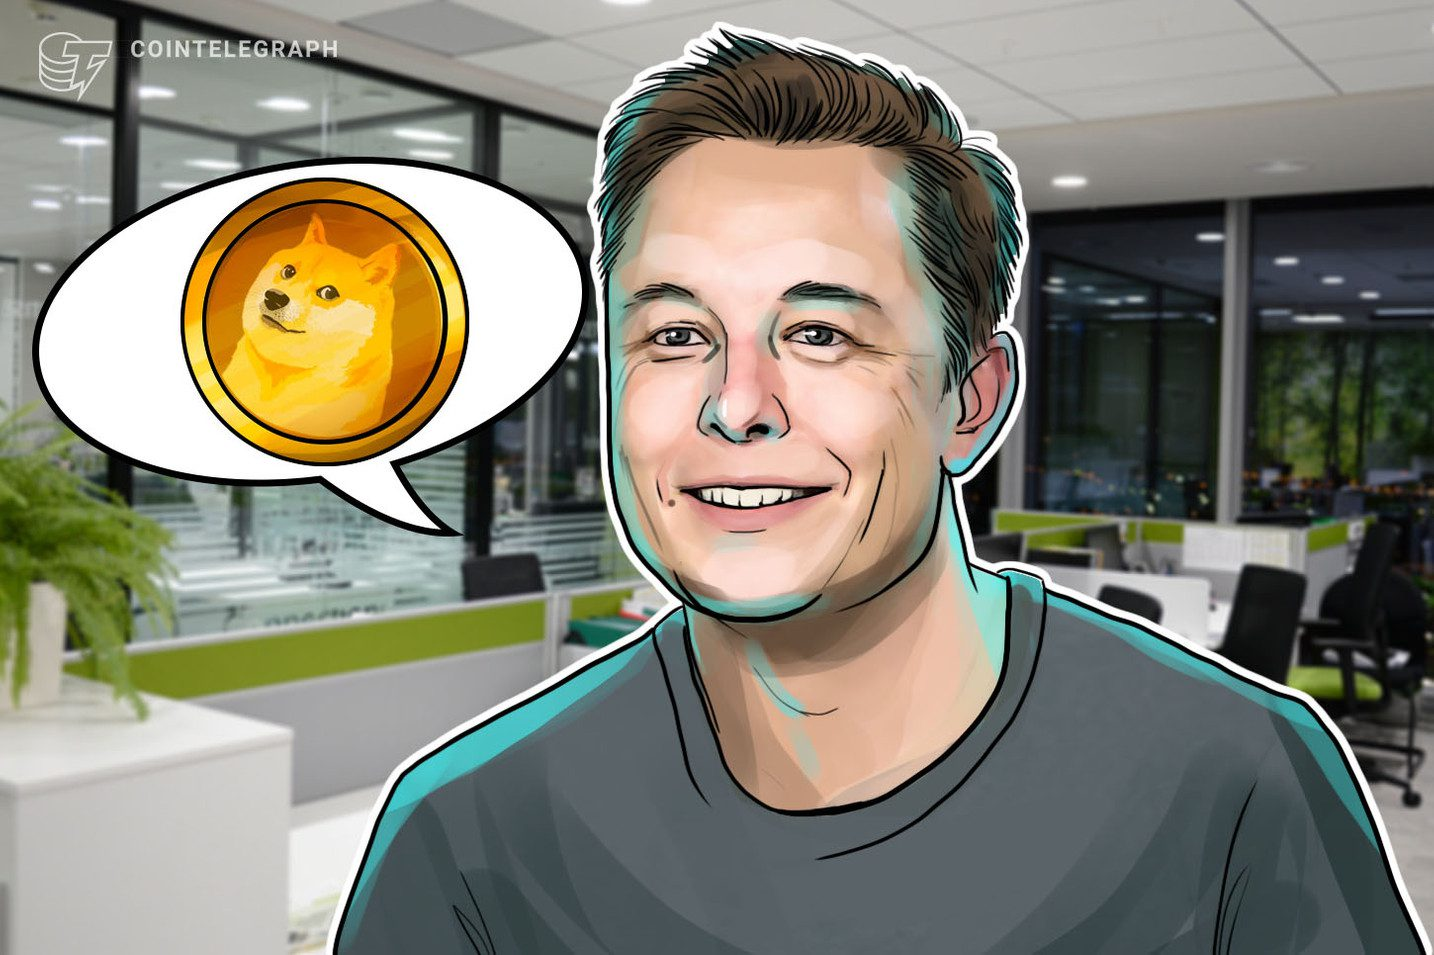 Dogecoin endorsed by Elon Musk